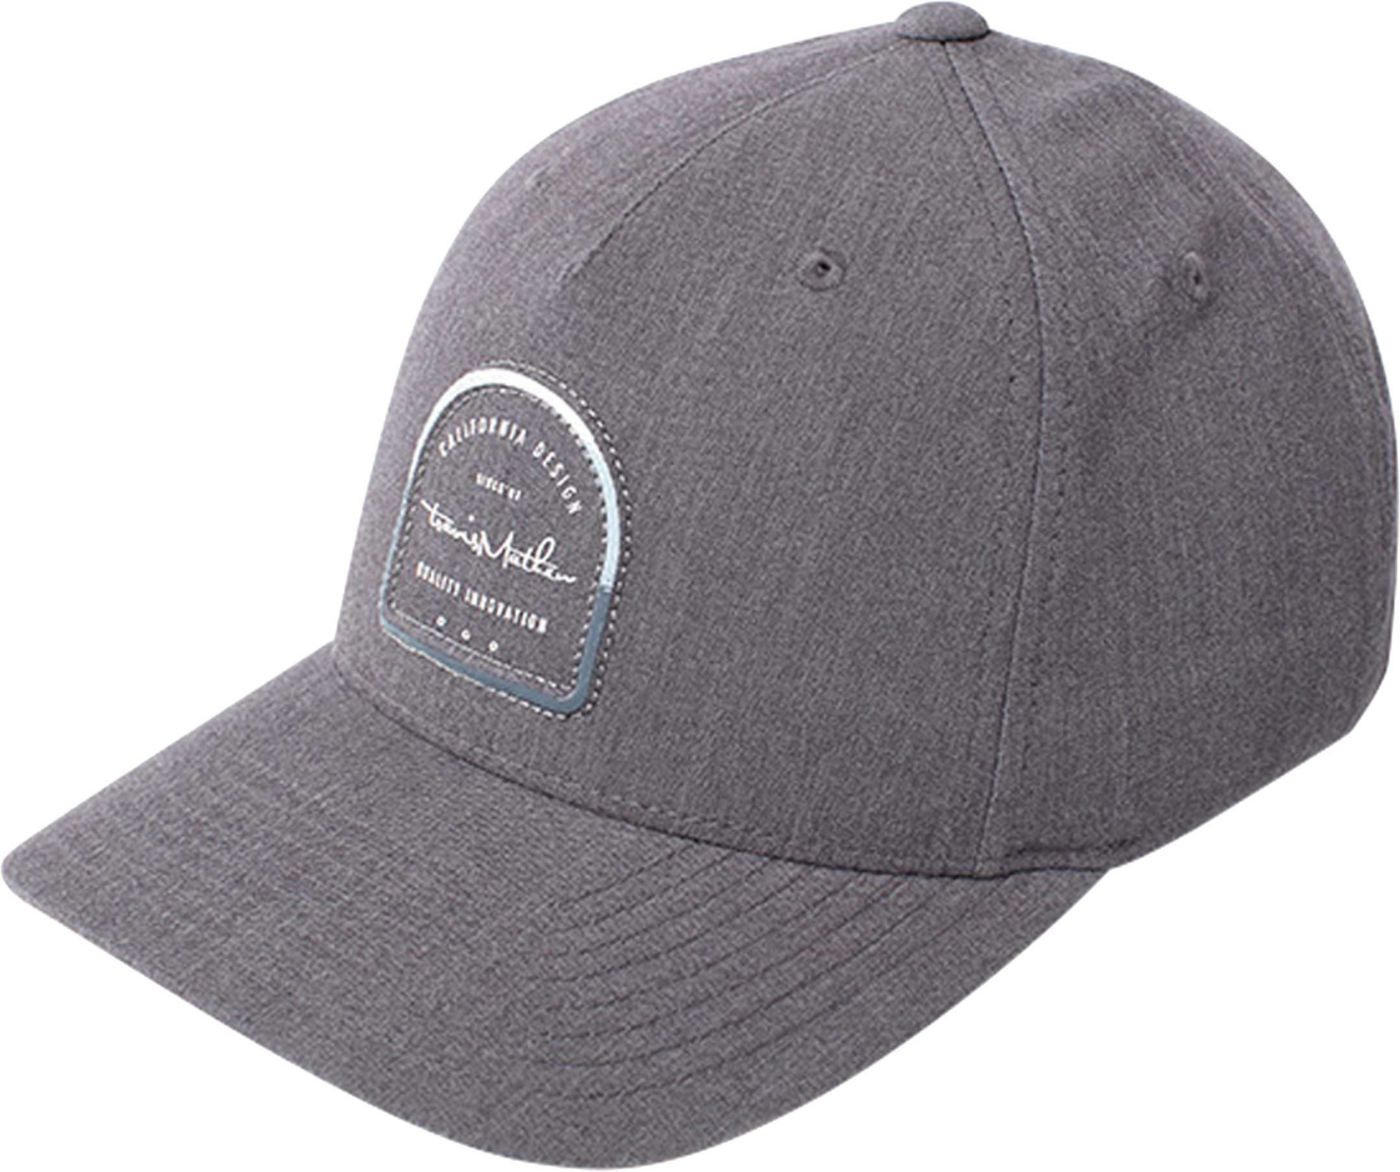 TravisMathew Men's Yep Golf Hat